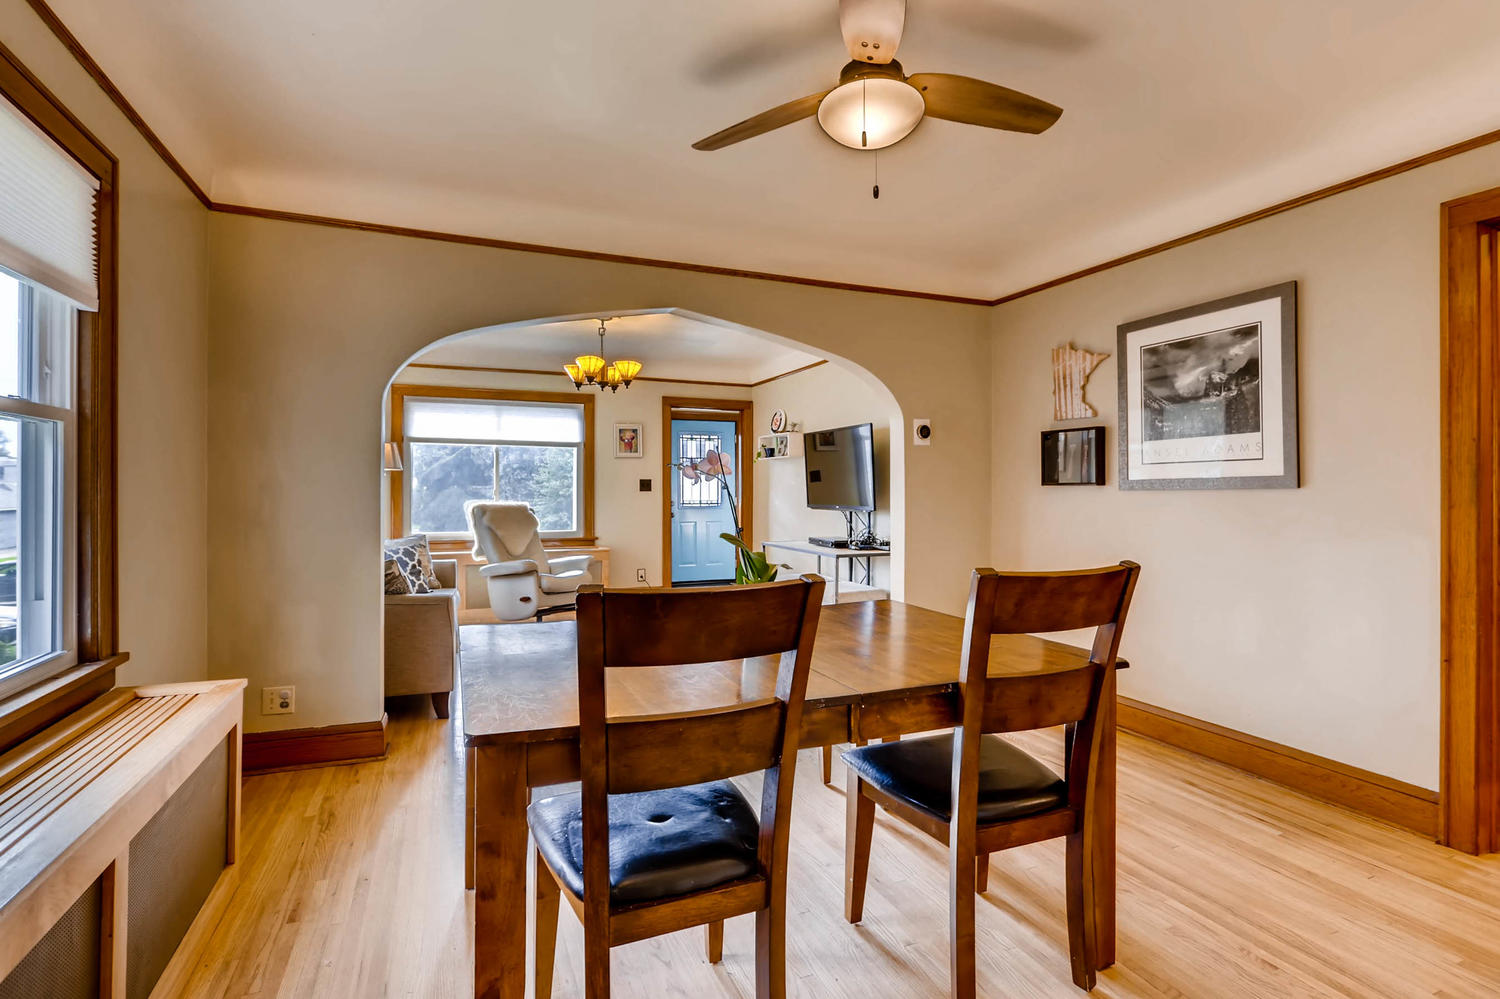 2519 3rd St NE Minneapolis MN-large-011-11-Dining Room-1500x1000-72dpi.jpg